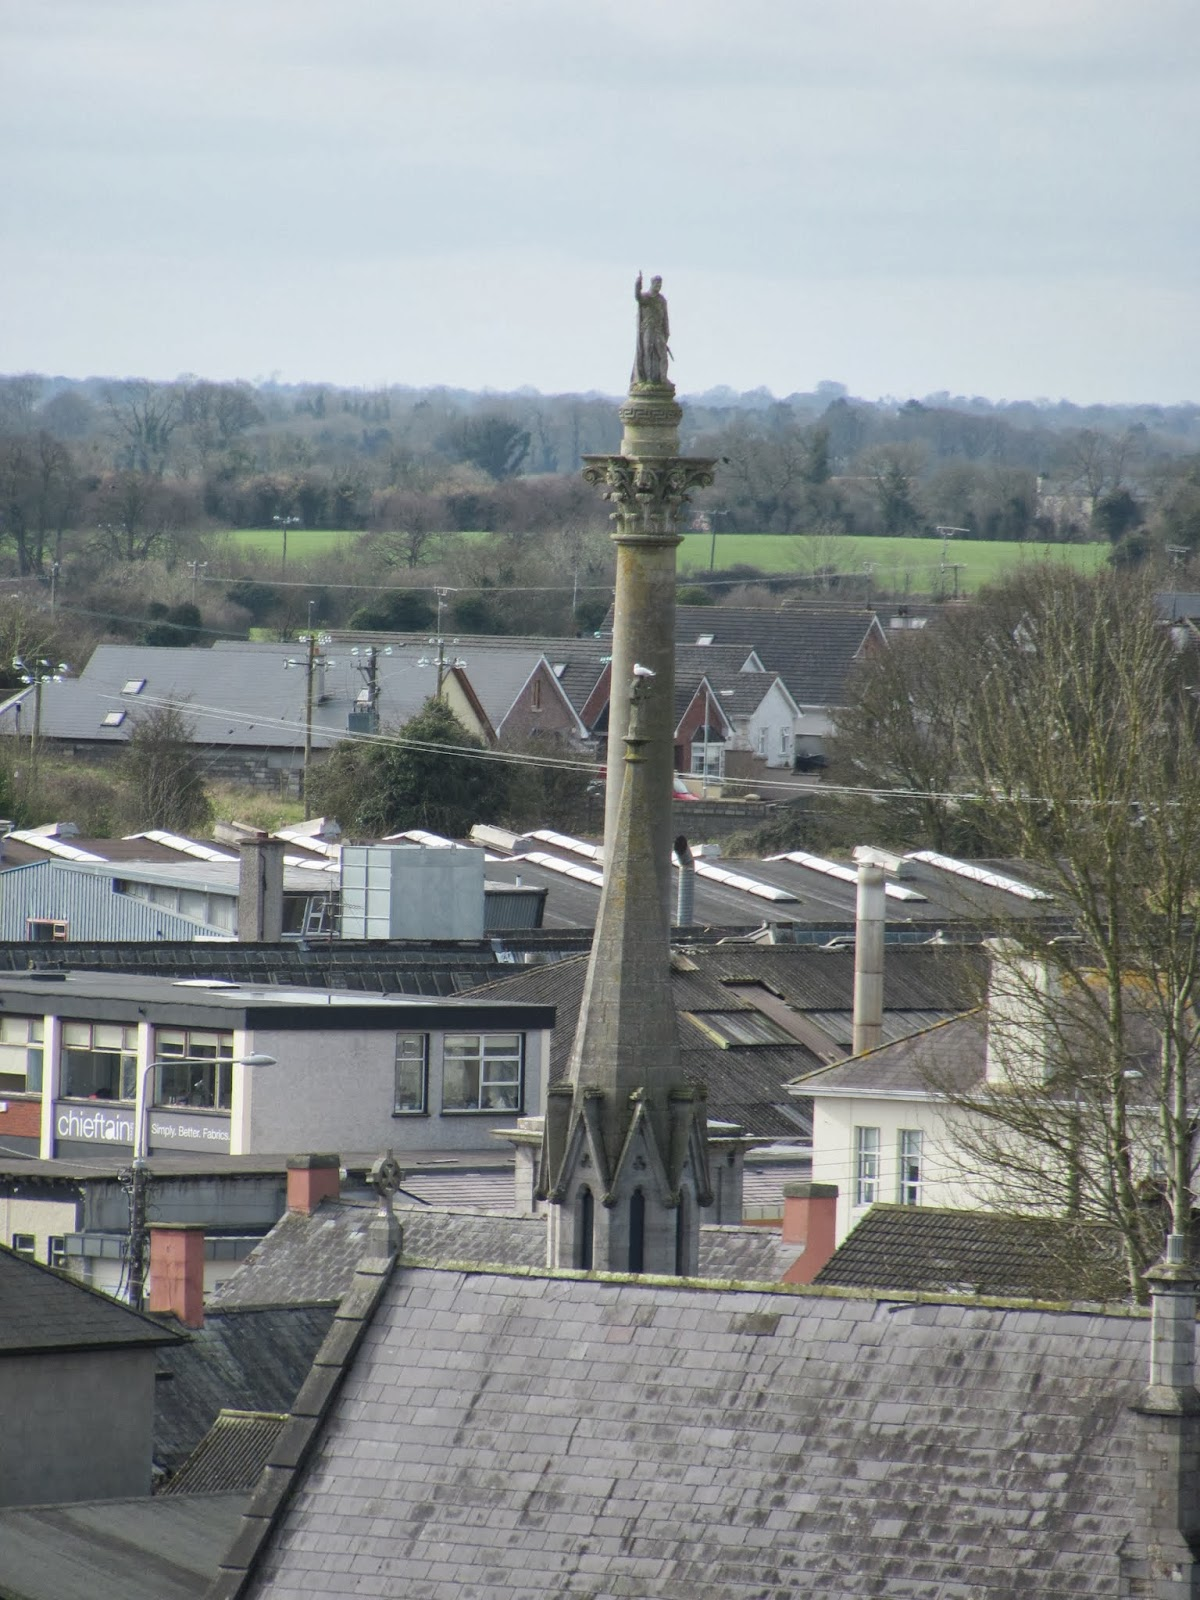 Wellington Monument in Trim, Ireland